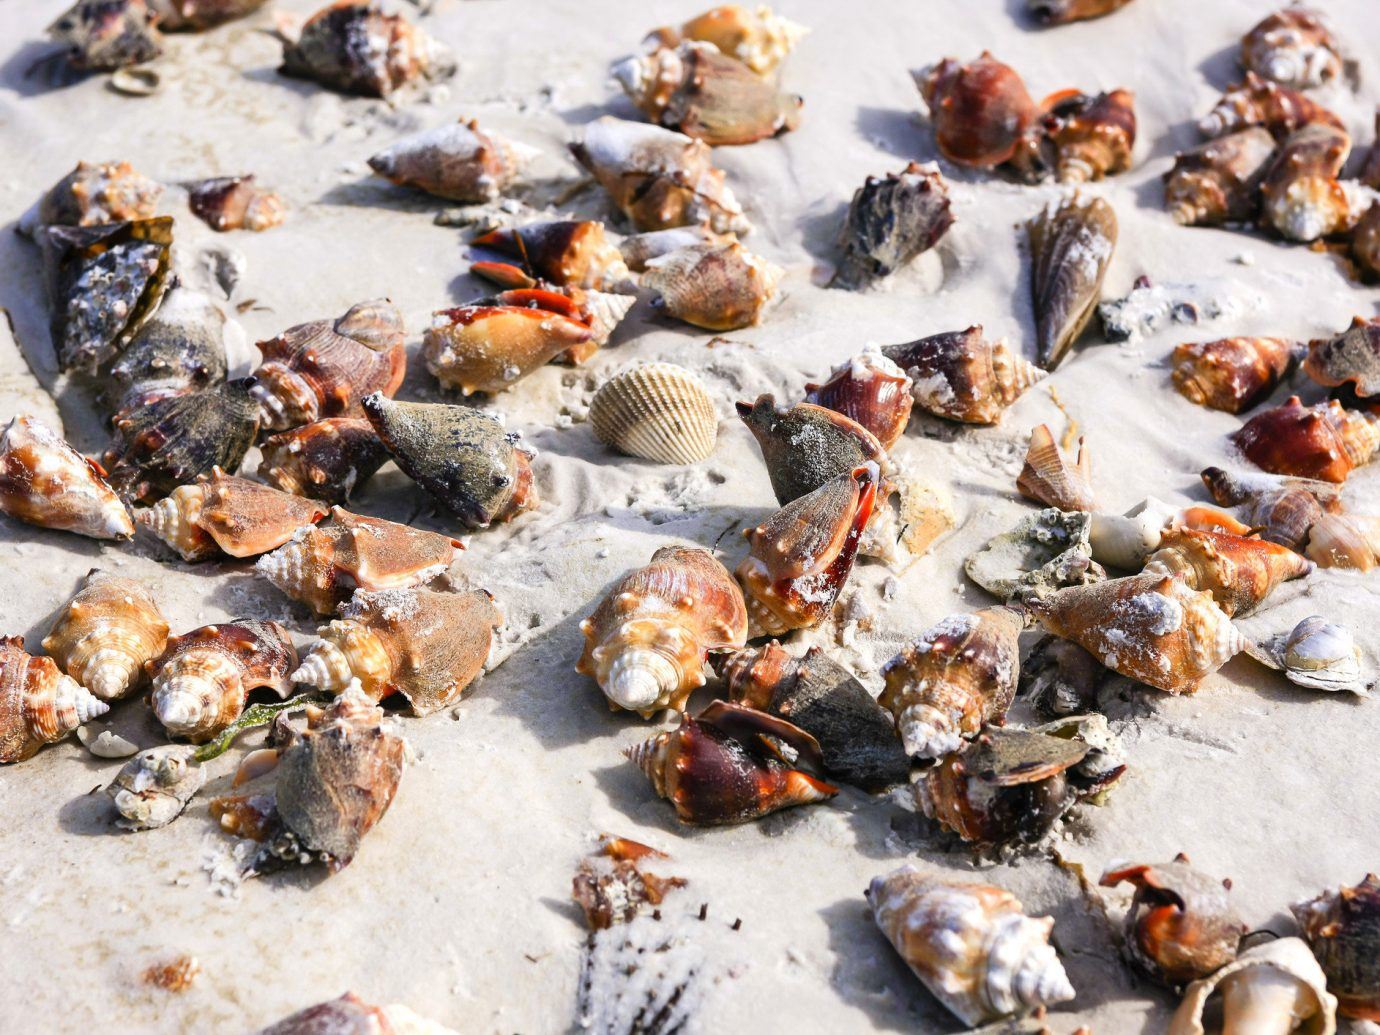 Trip Ideas covered food animal source foods dish Seafood animal product toppings fresh